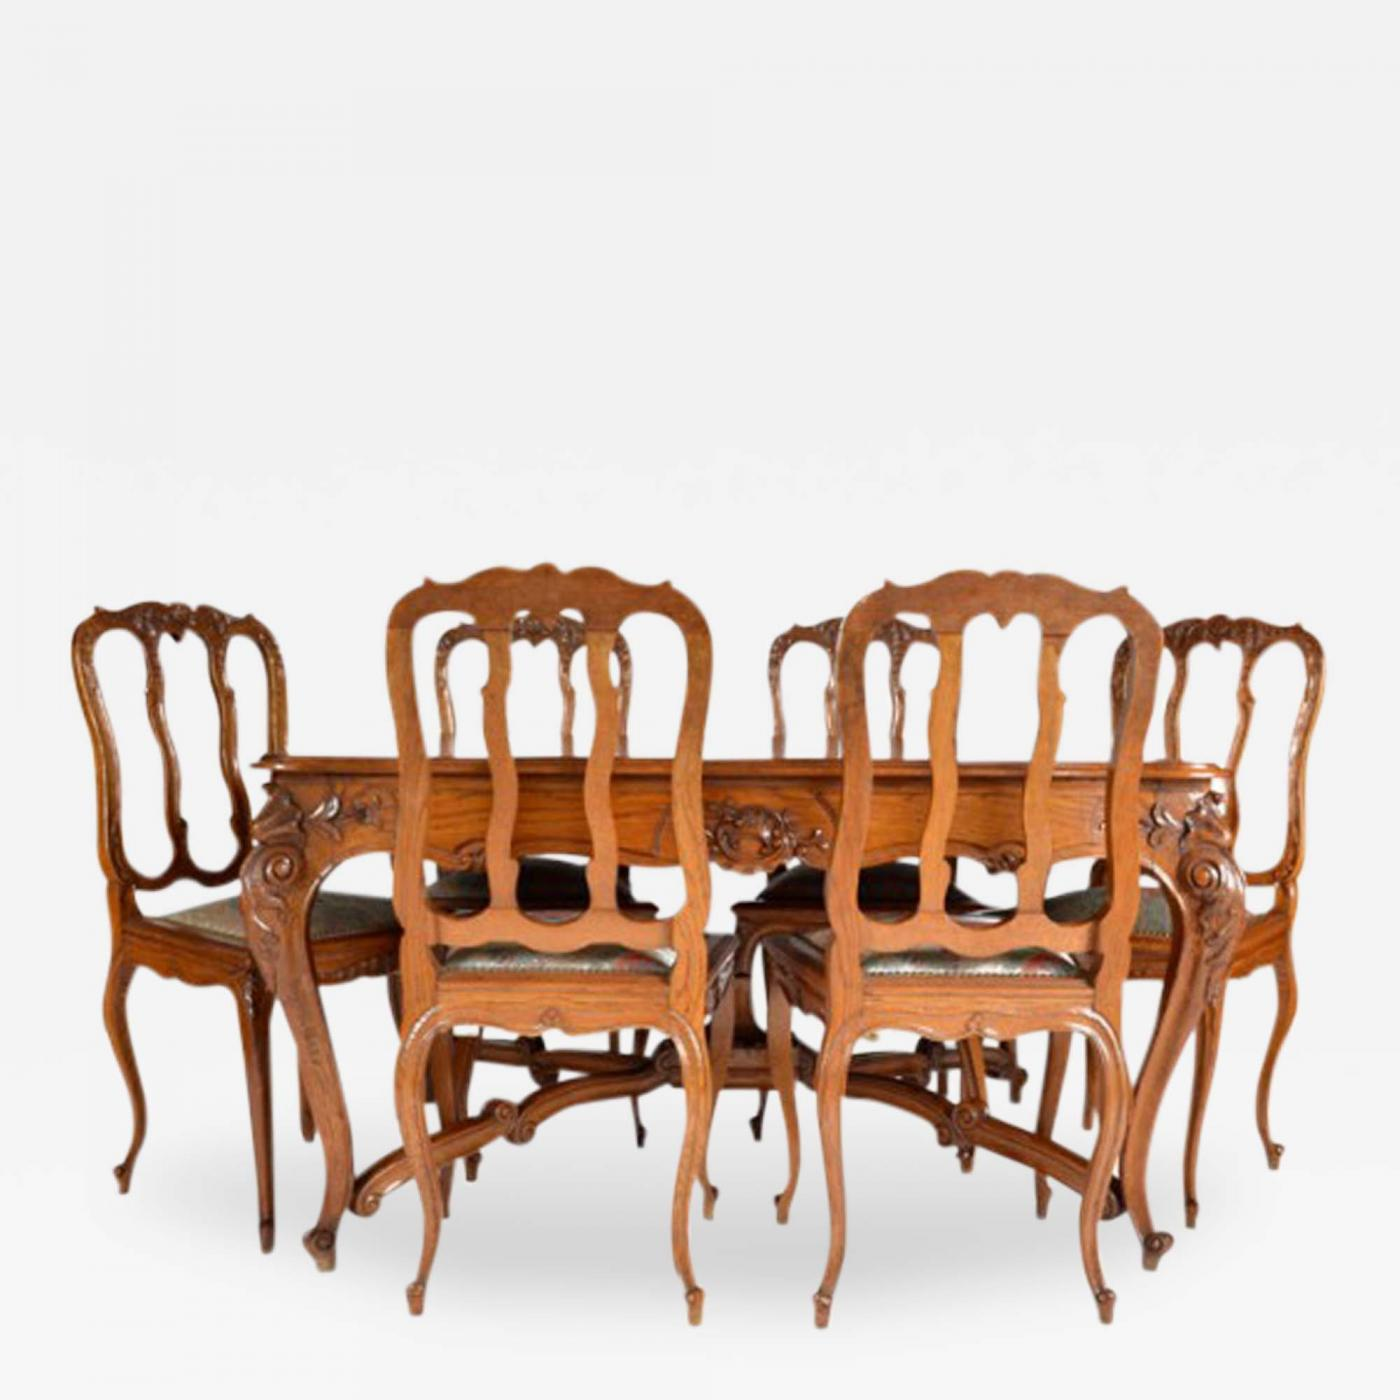 Louis xv dining table - Listings Furniture Tables Dining Tables Antique Louis Xv